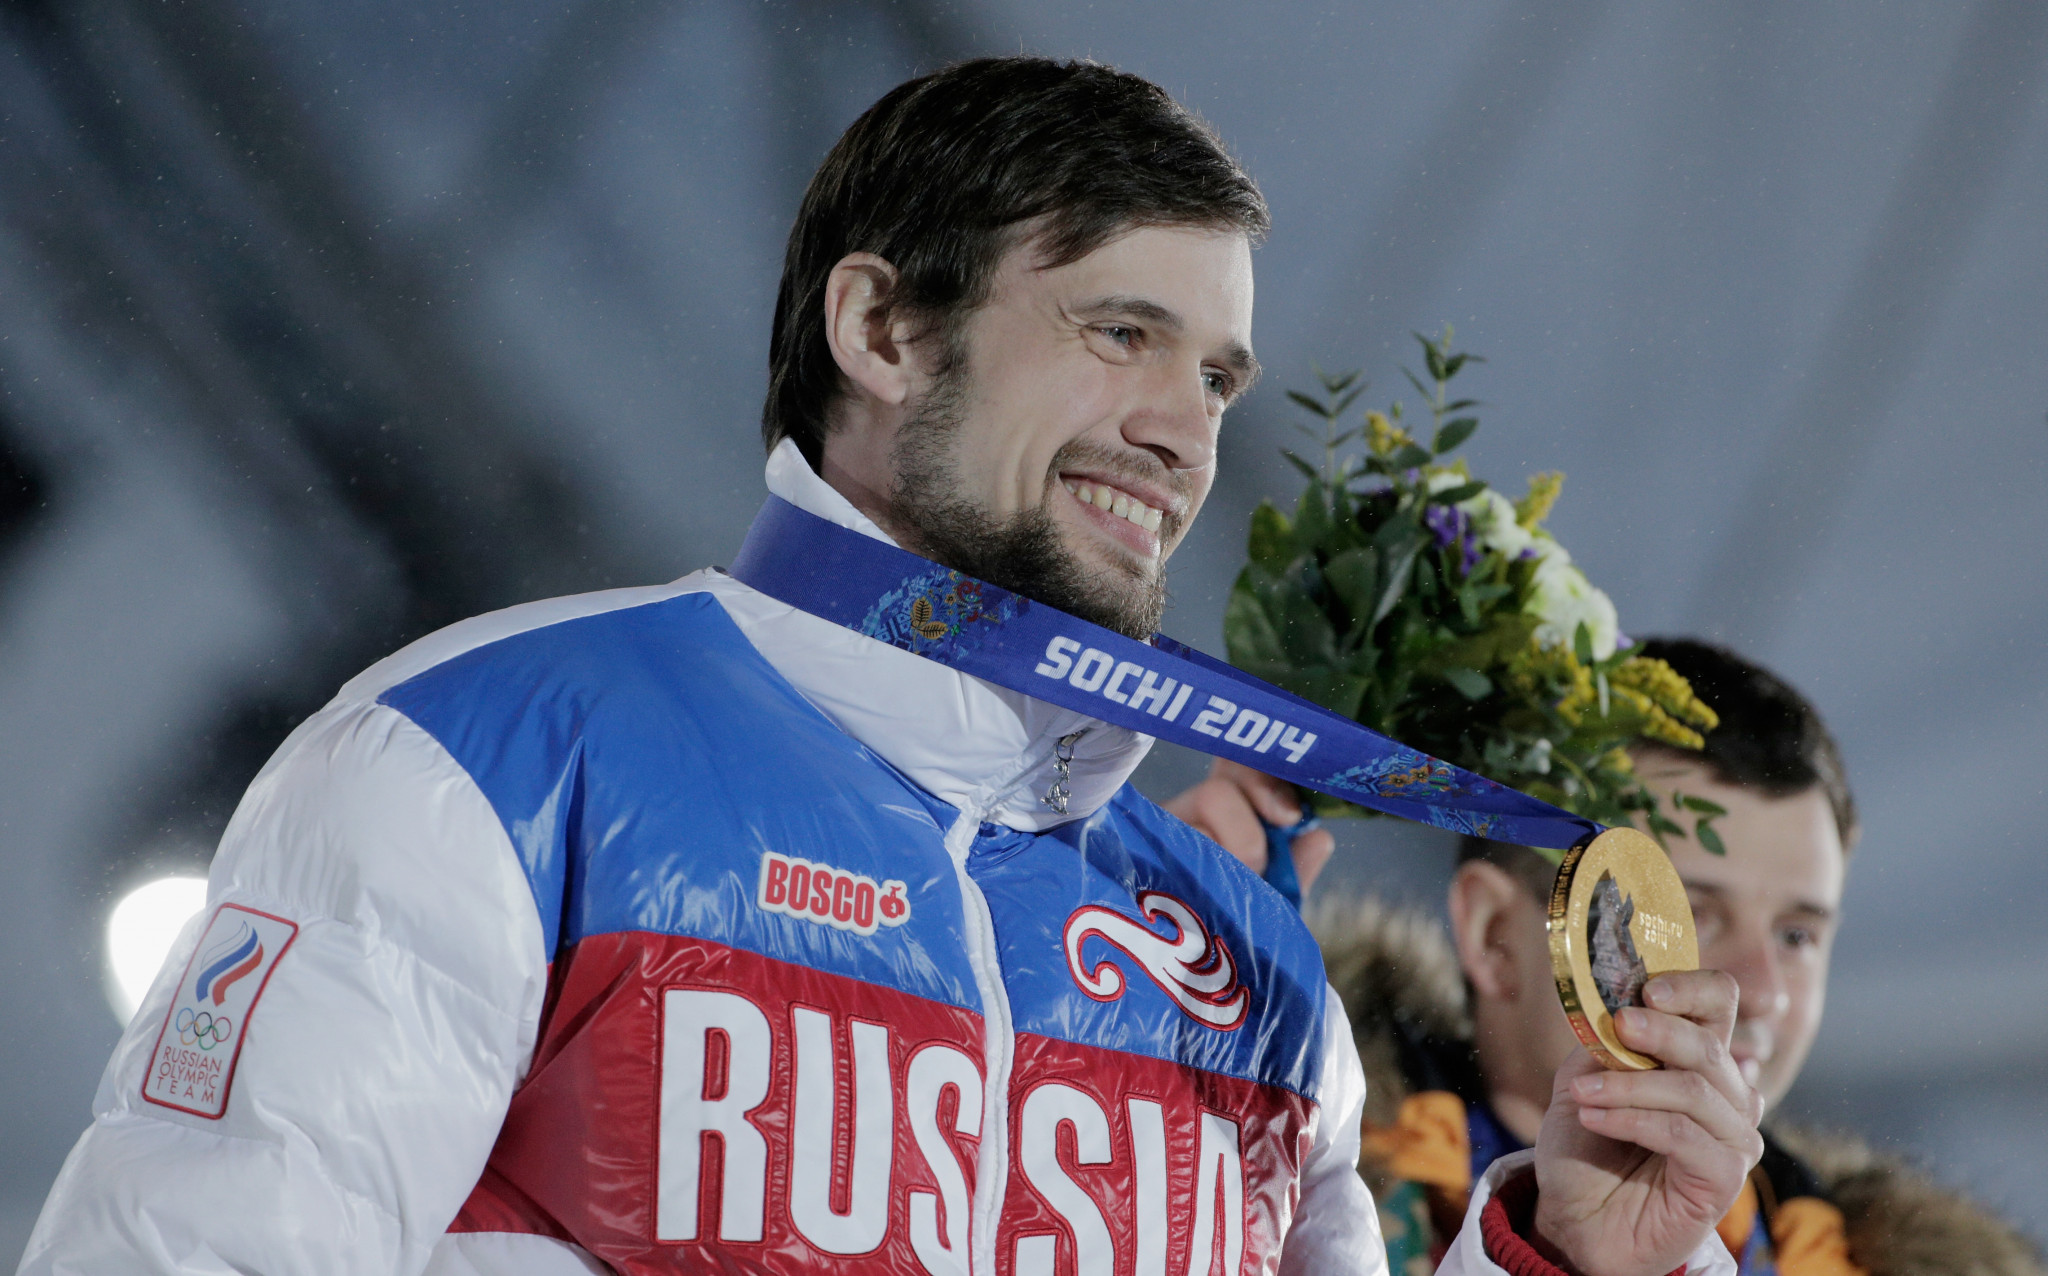 Alexander Tretiakov has been disqualified and stripped of his men's skeleton gold medal at Sochi 2014 ©Getty Images